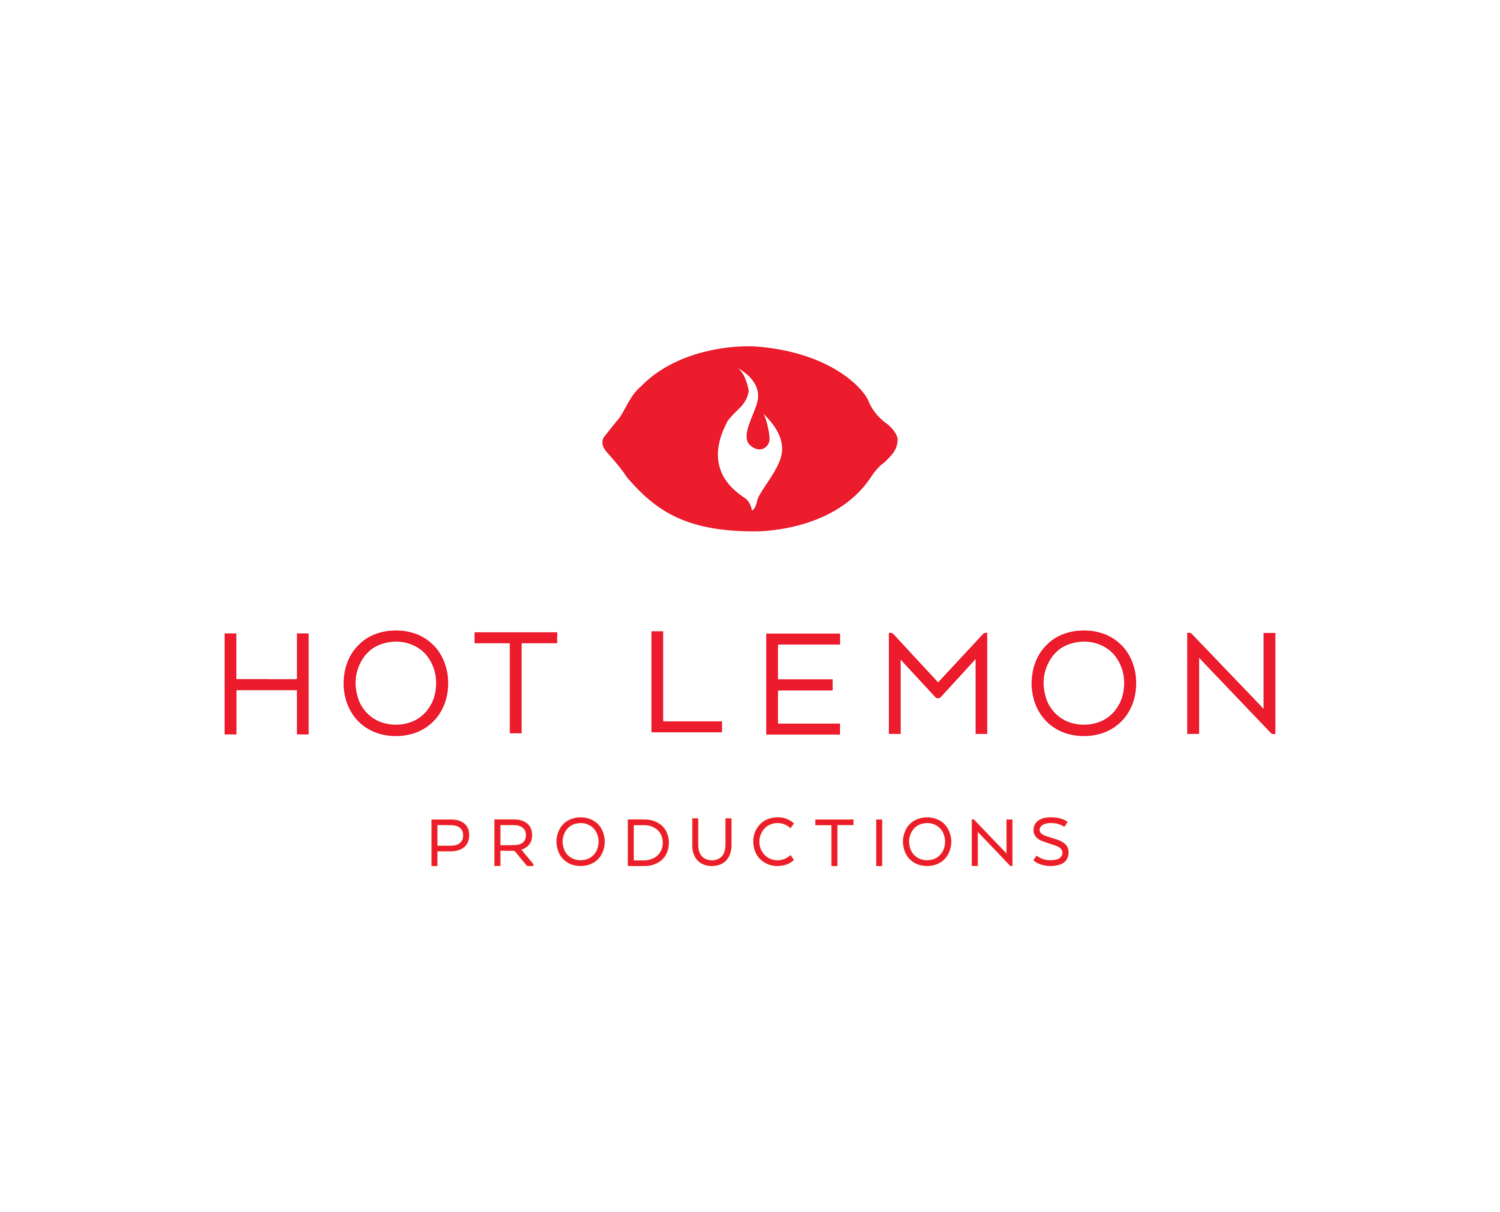 Hot Lemon Productions